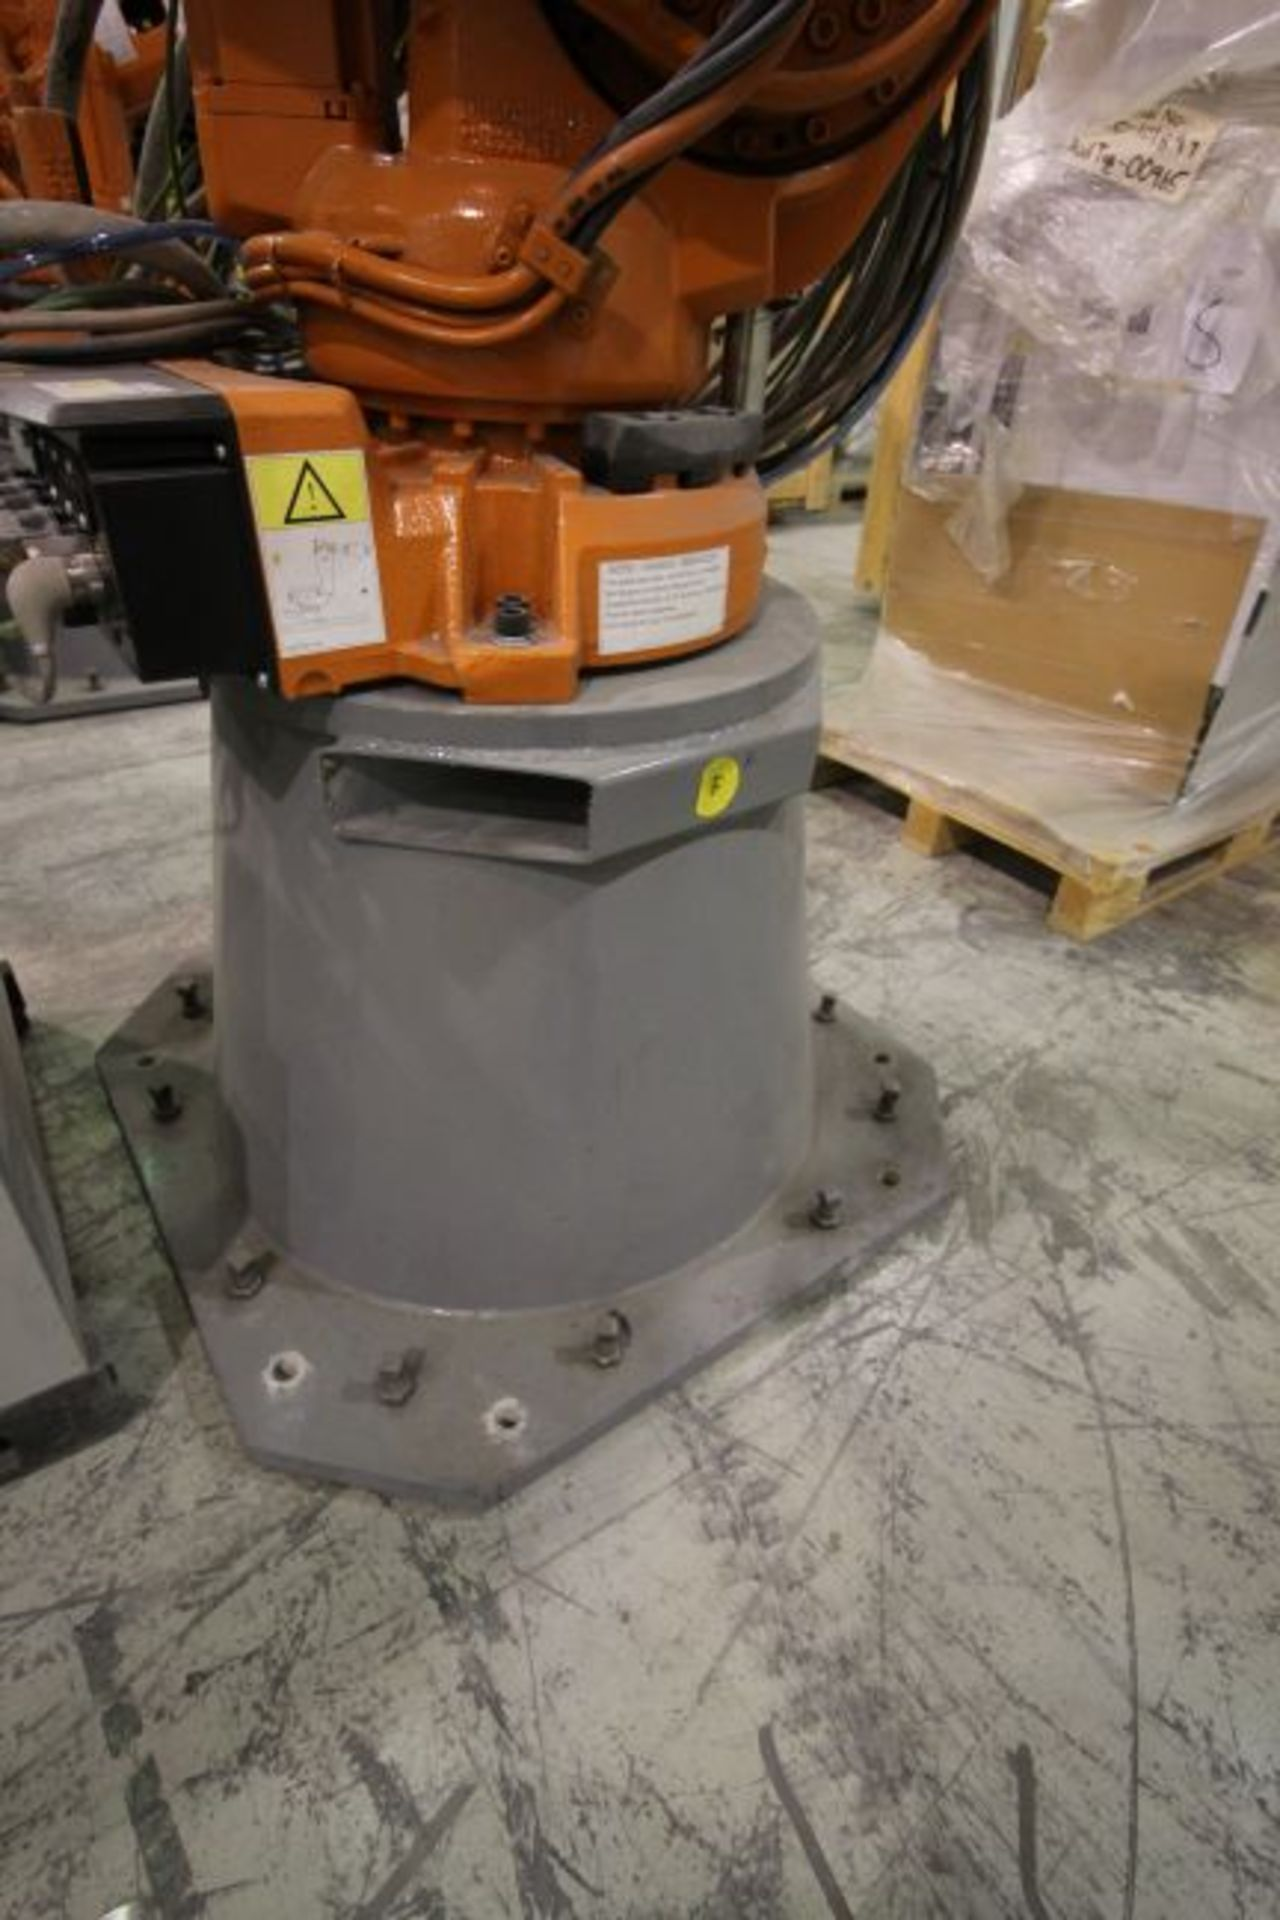 ABB ROBOT IRB 4600 2.55/40KG WITH IRC5 CONTROLS, YEAR 2014, SN 500869TEACH PENDANT& CABLES - Image 4 of 9